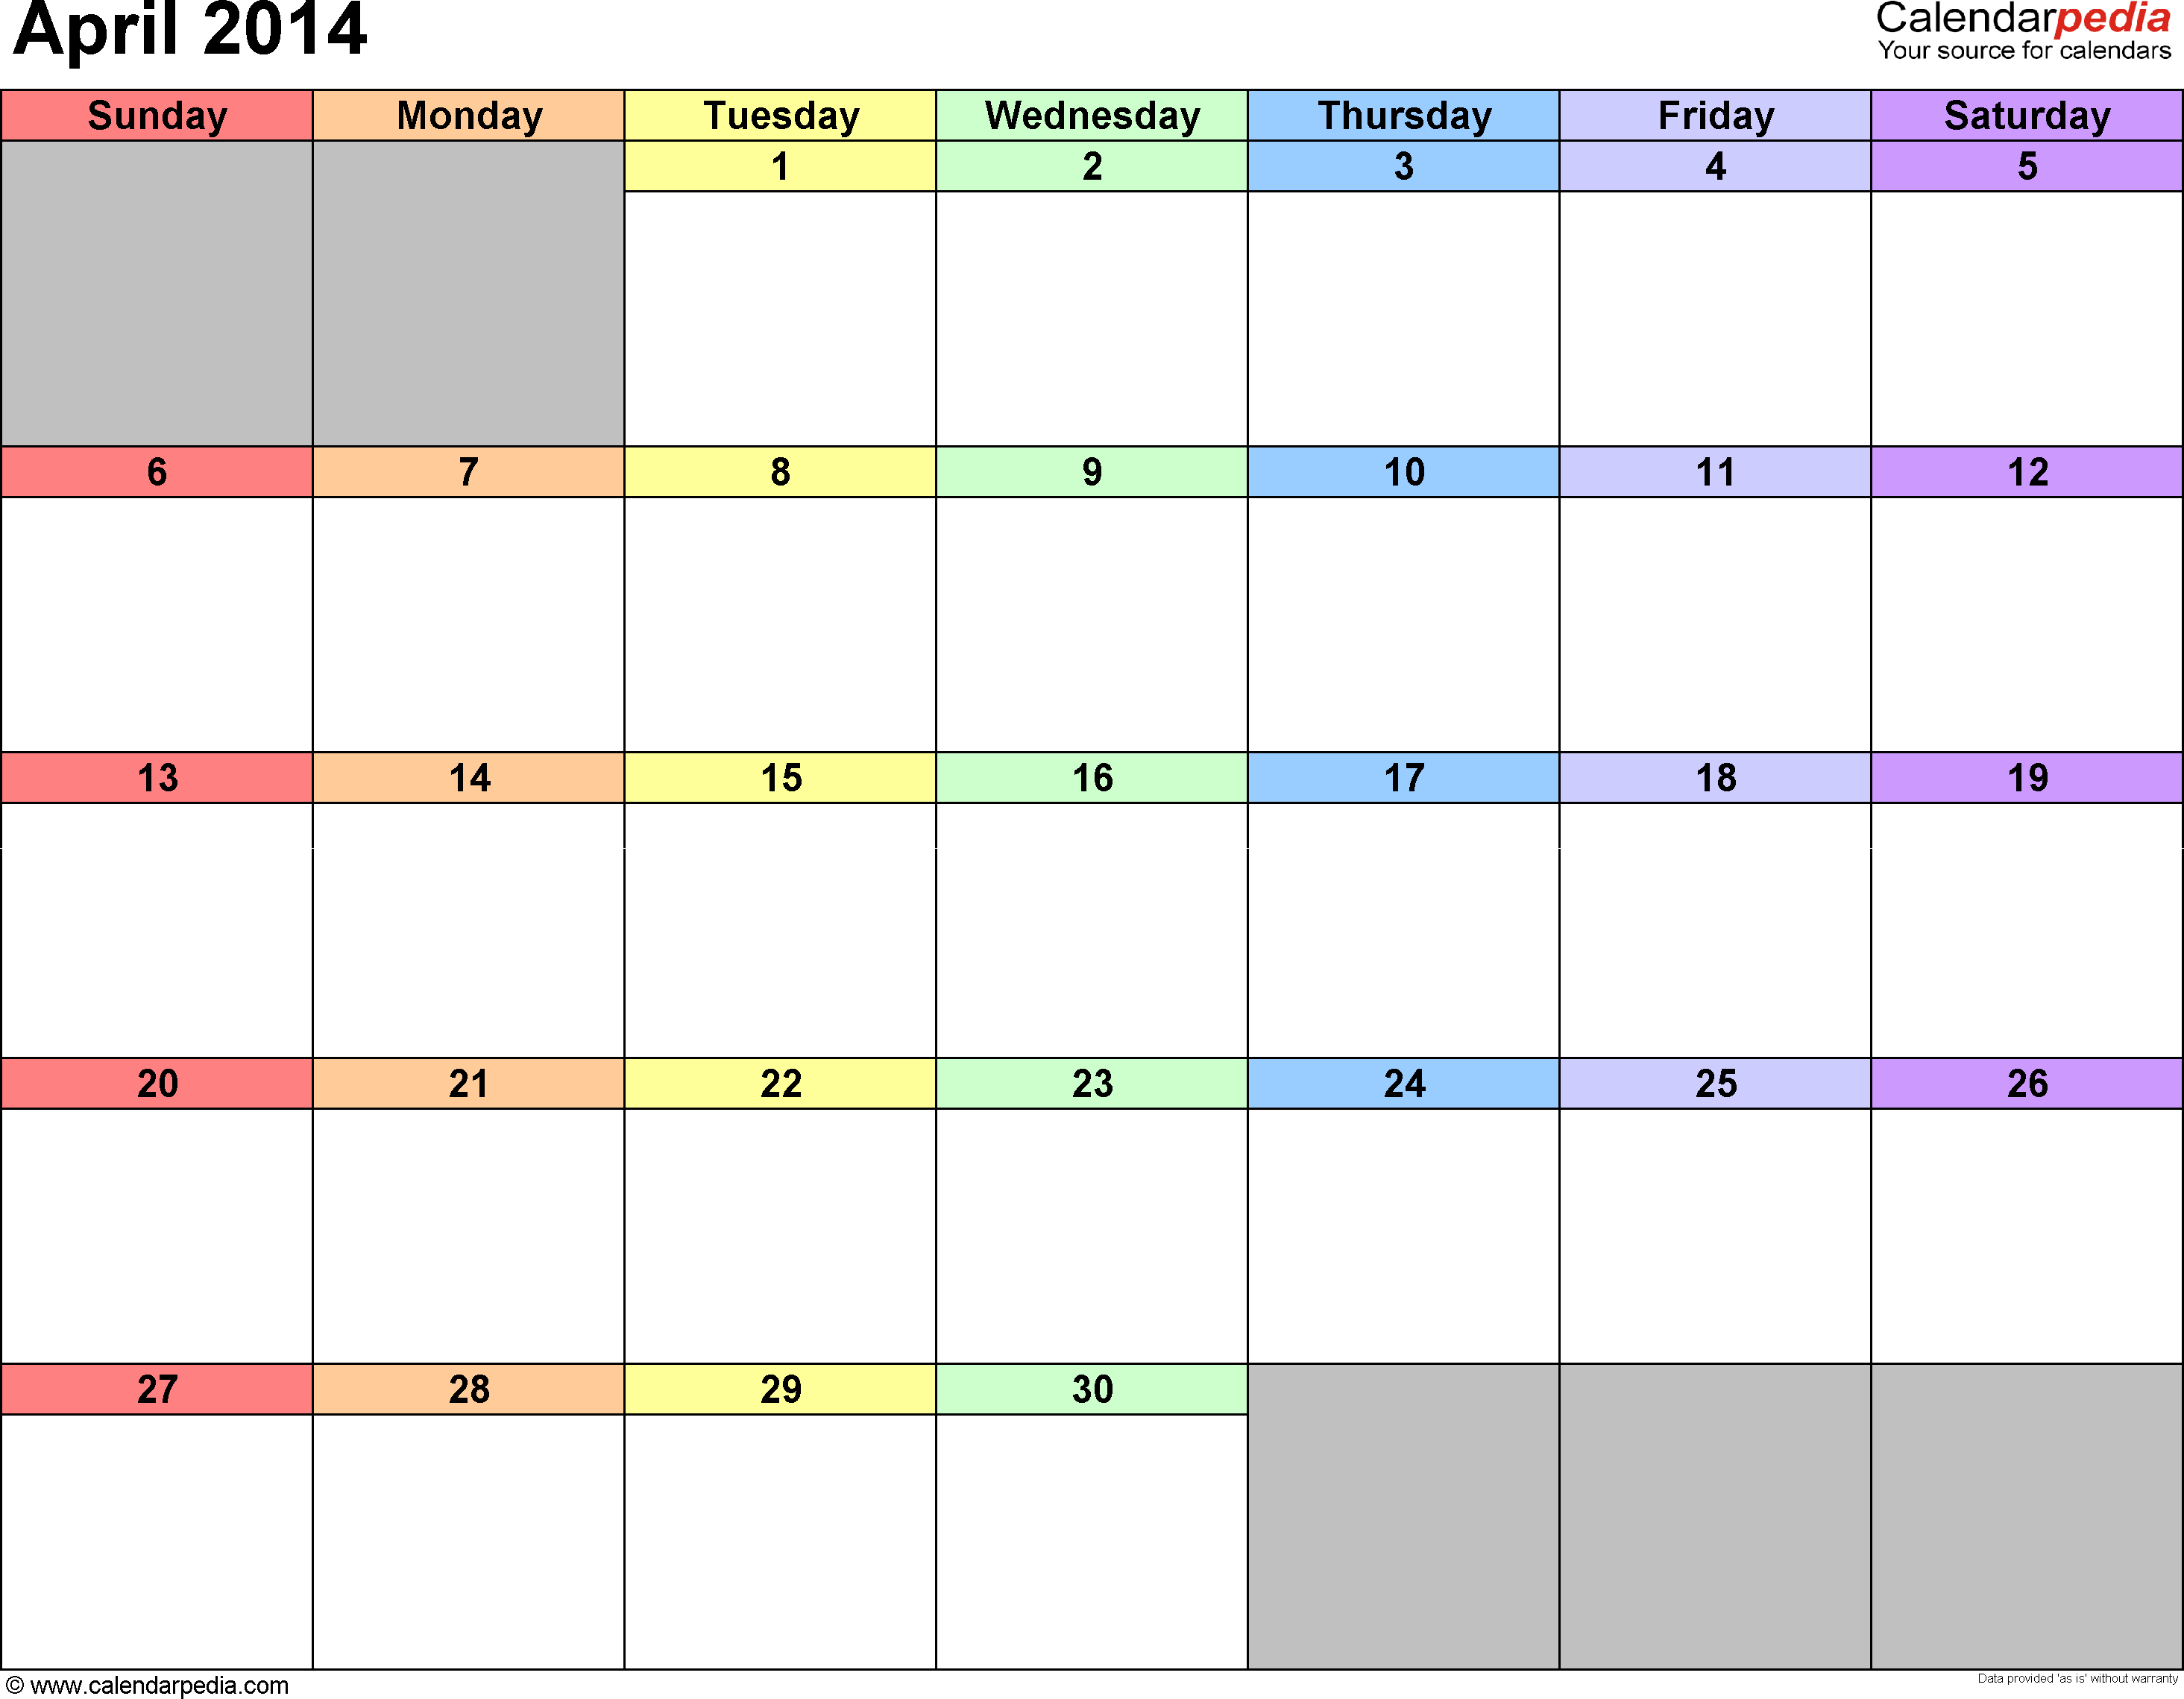 April 2014 calendar, landscape orientation, 'rainbow calendar', available as printable templates for Word, Excel and PDF